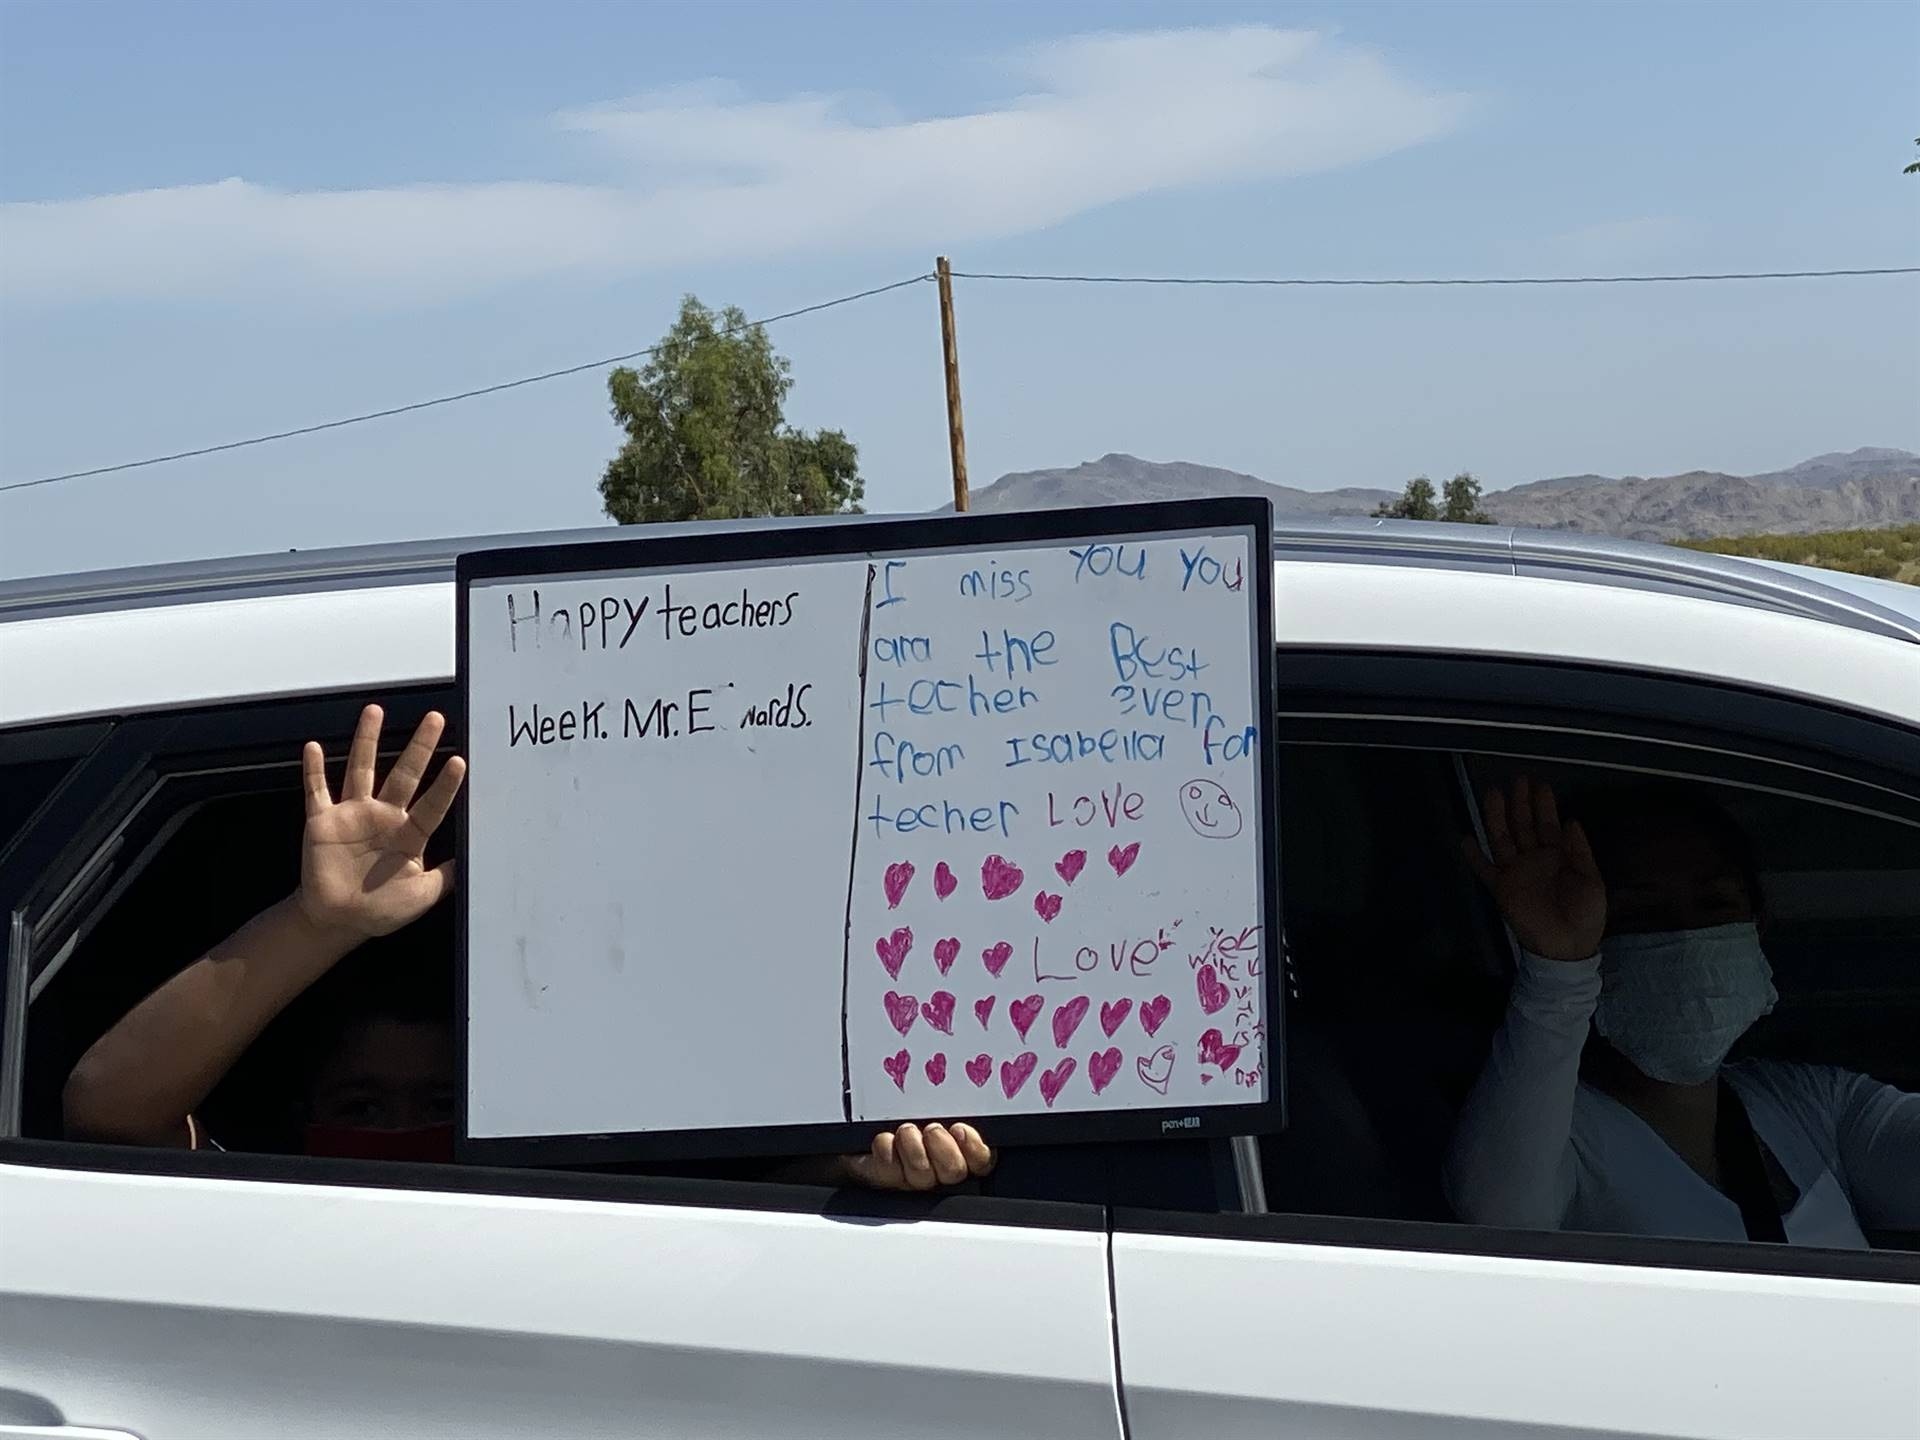 Students wave to teachers with signs of appreciation